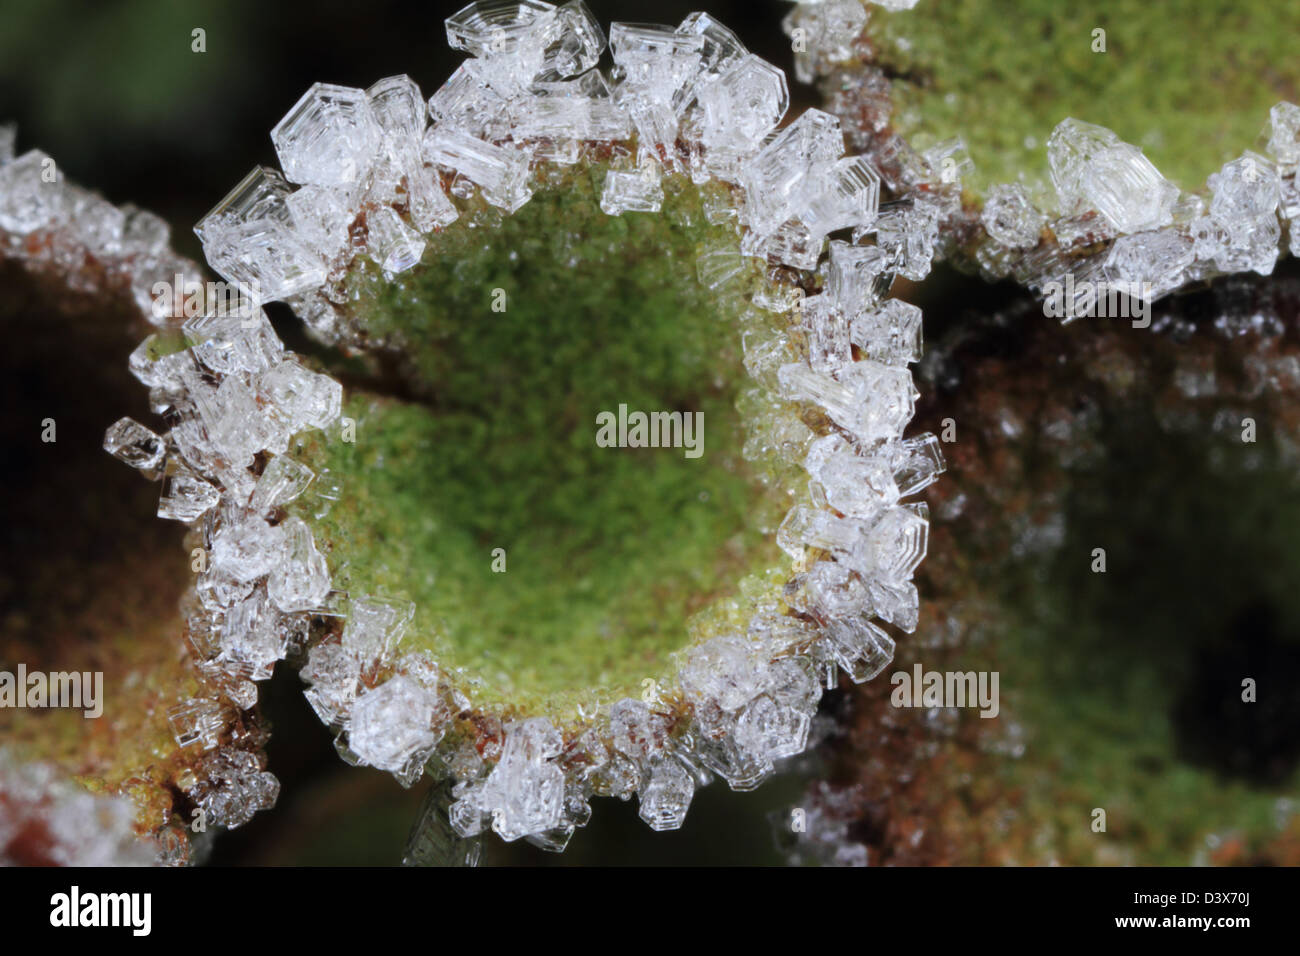 Hoar frost crystals on the rim of a cup lichen. Photographed in Frederikshaab Plantation, Denmark Stock Photo